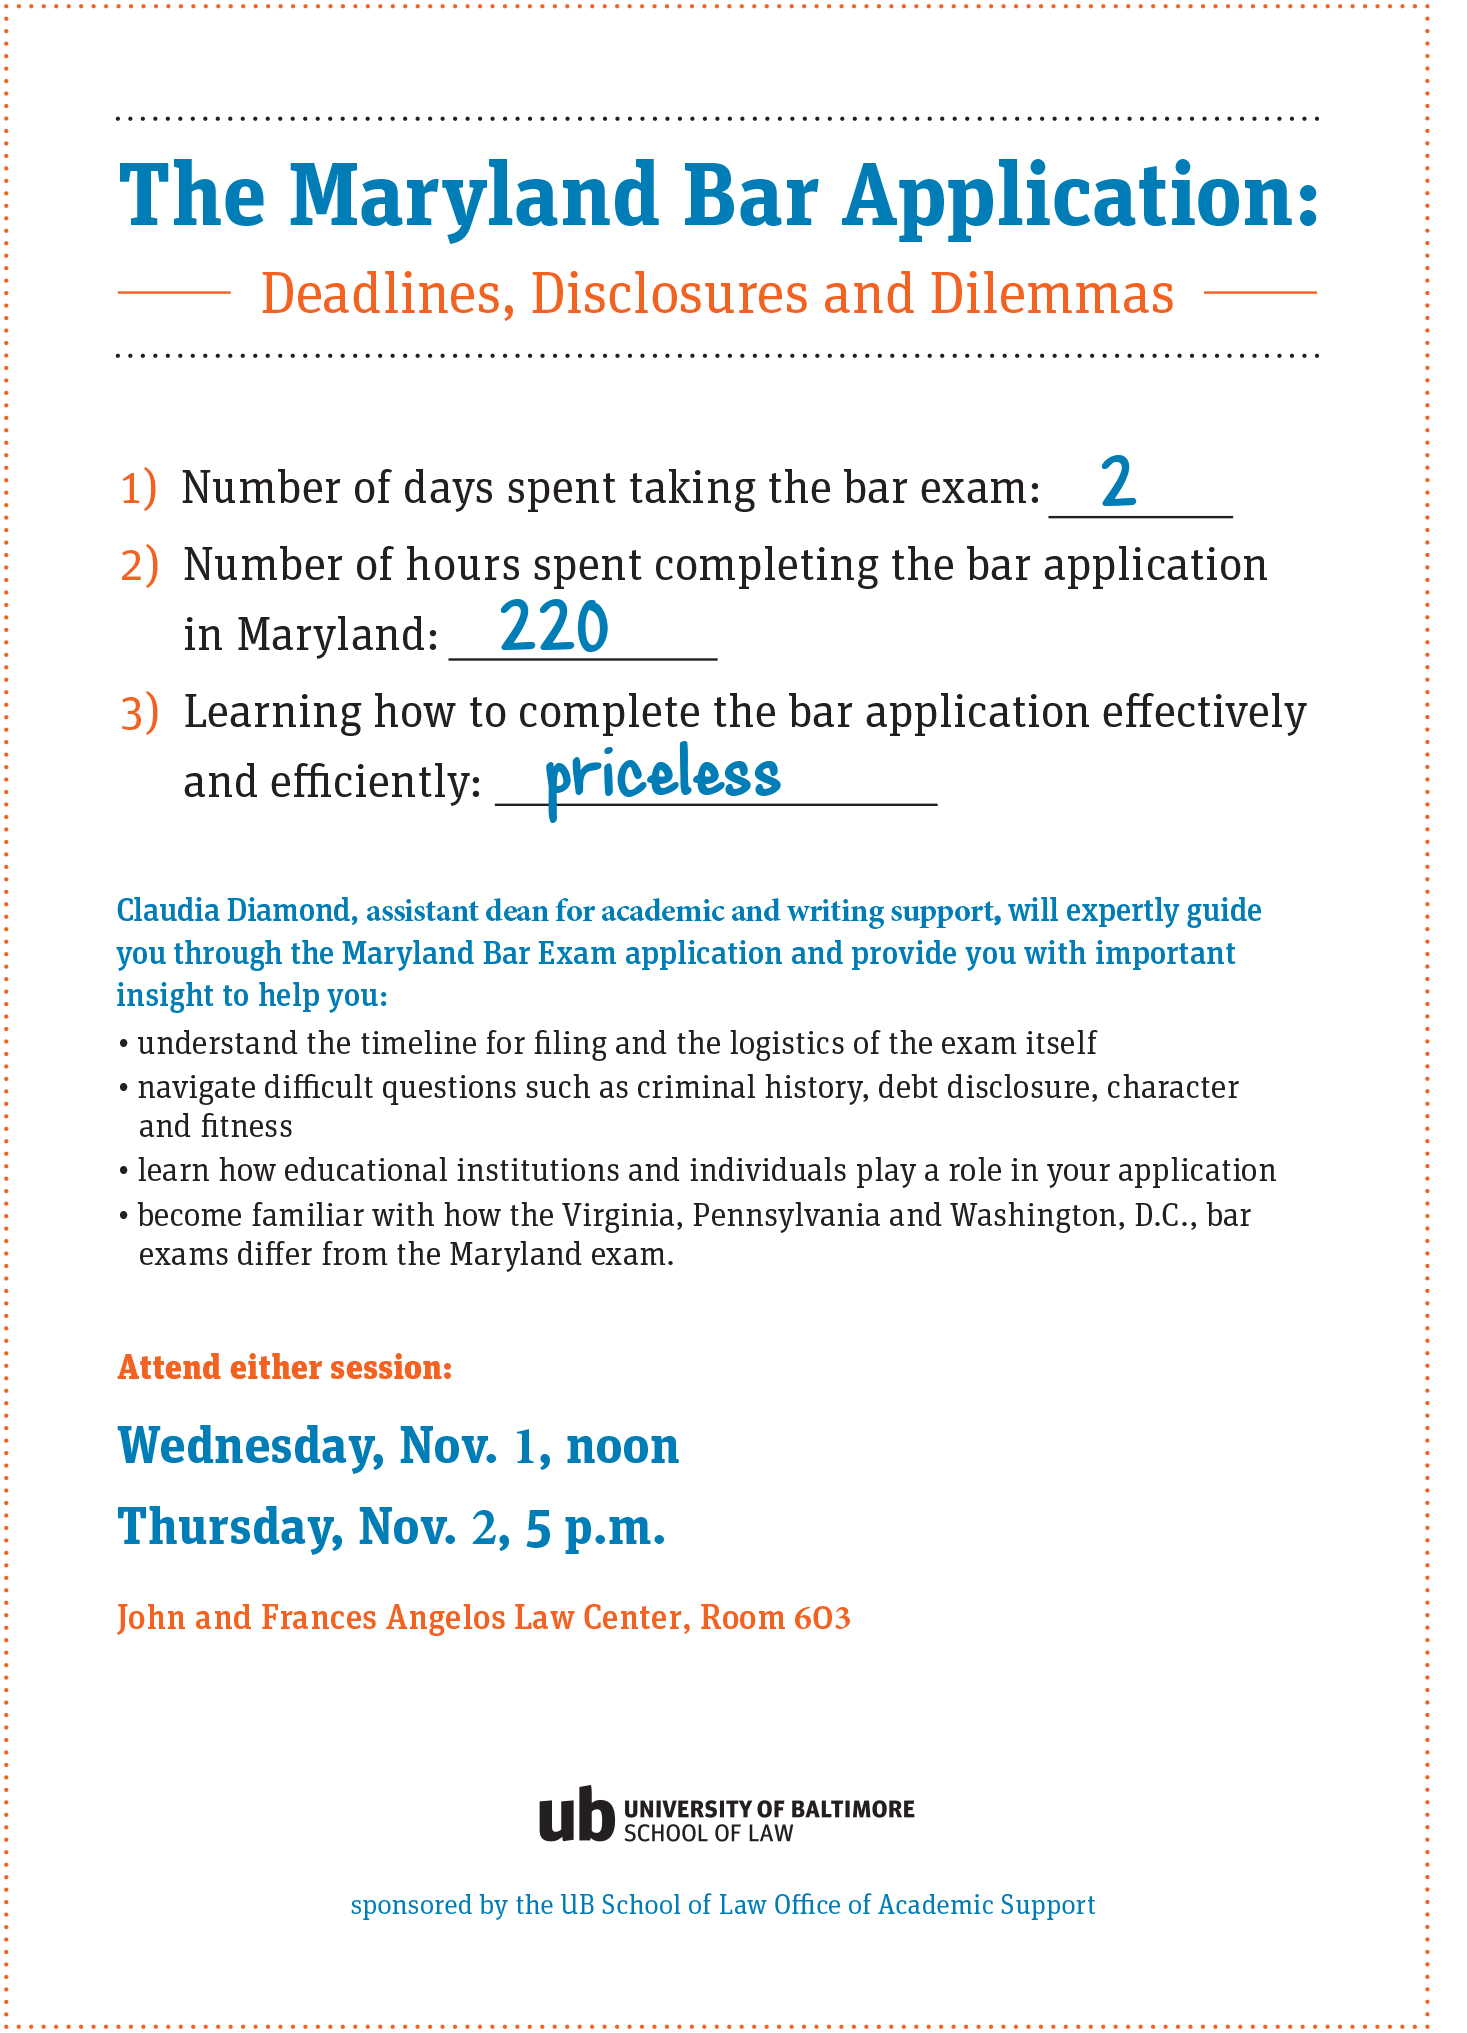 Sign up today to learn how to apply for the Maryland bar